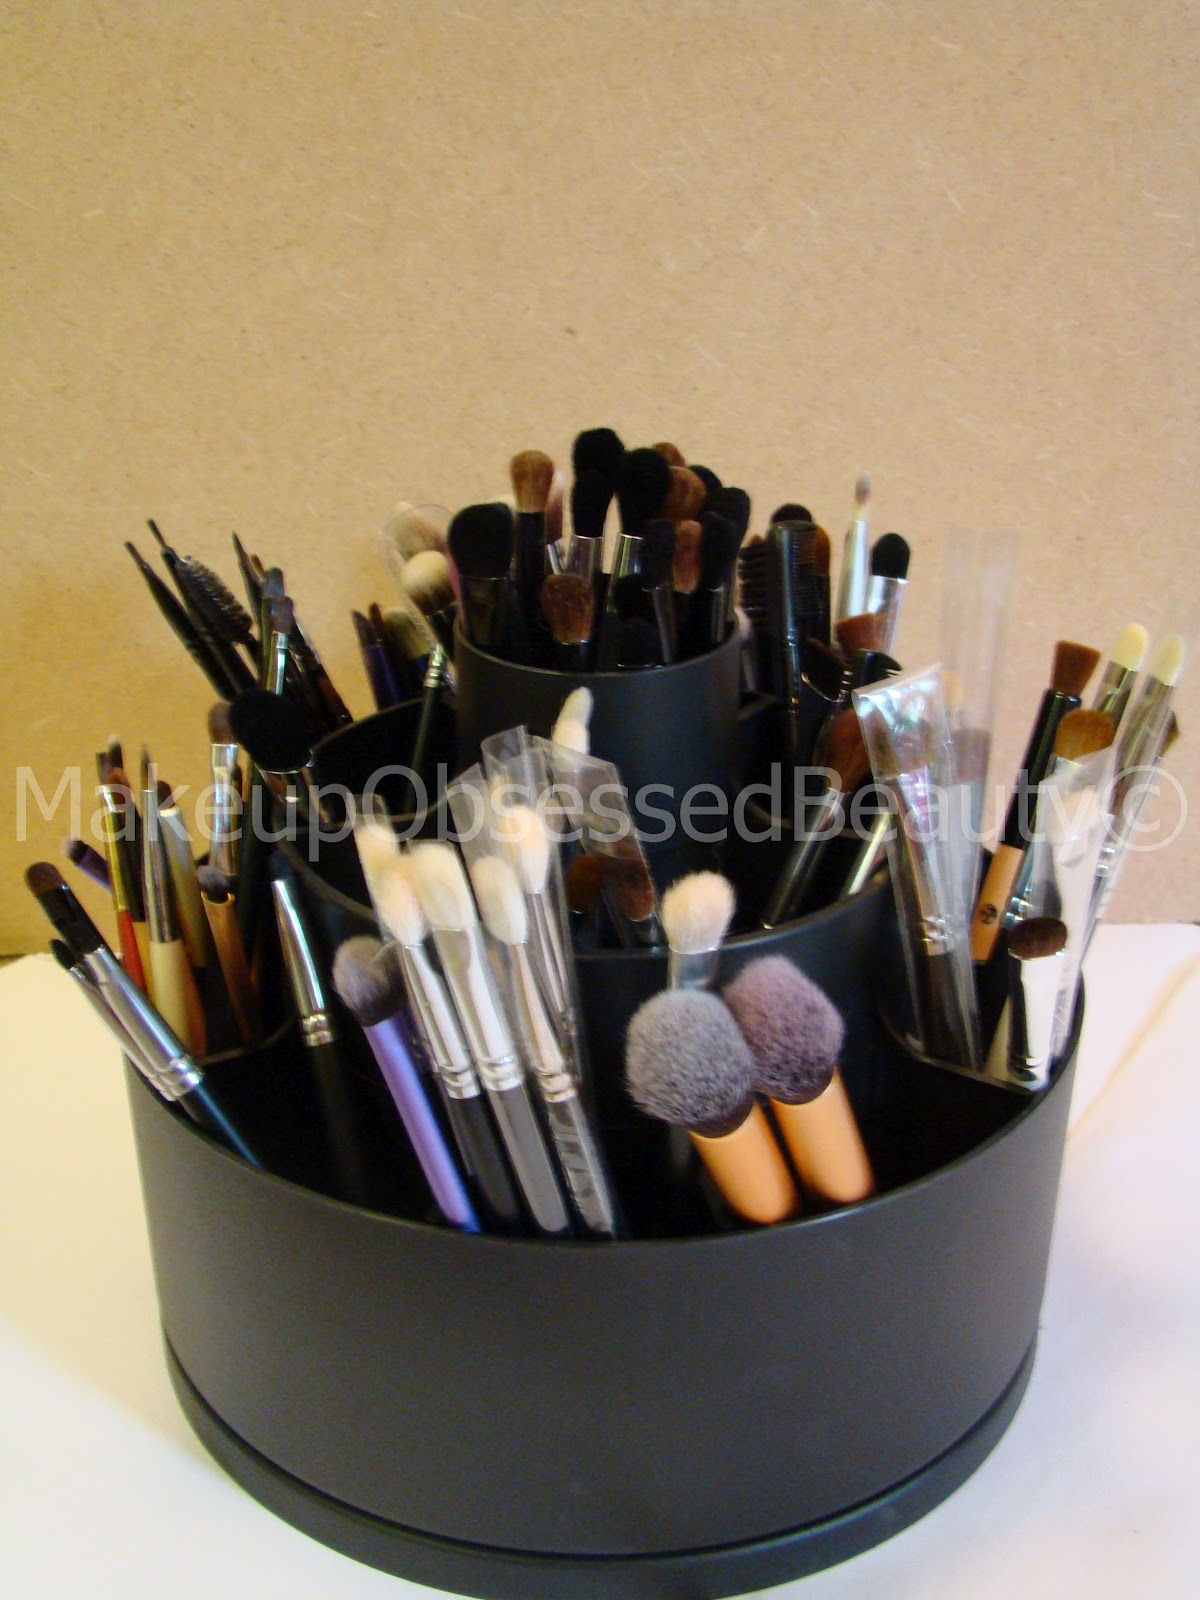 Makeup Brushes And What They Are Used For: How I Store My Makeup Brushes. Revolving Makeup Brush